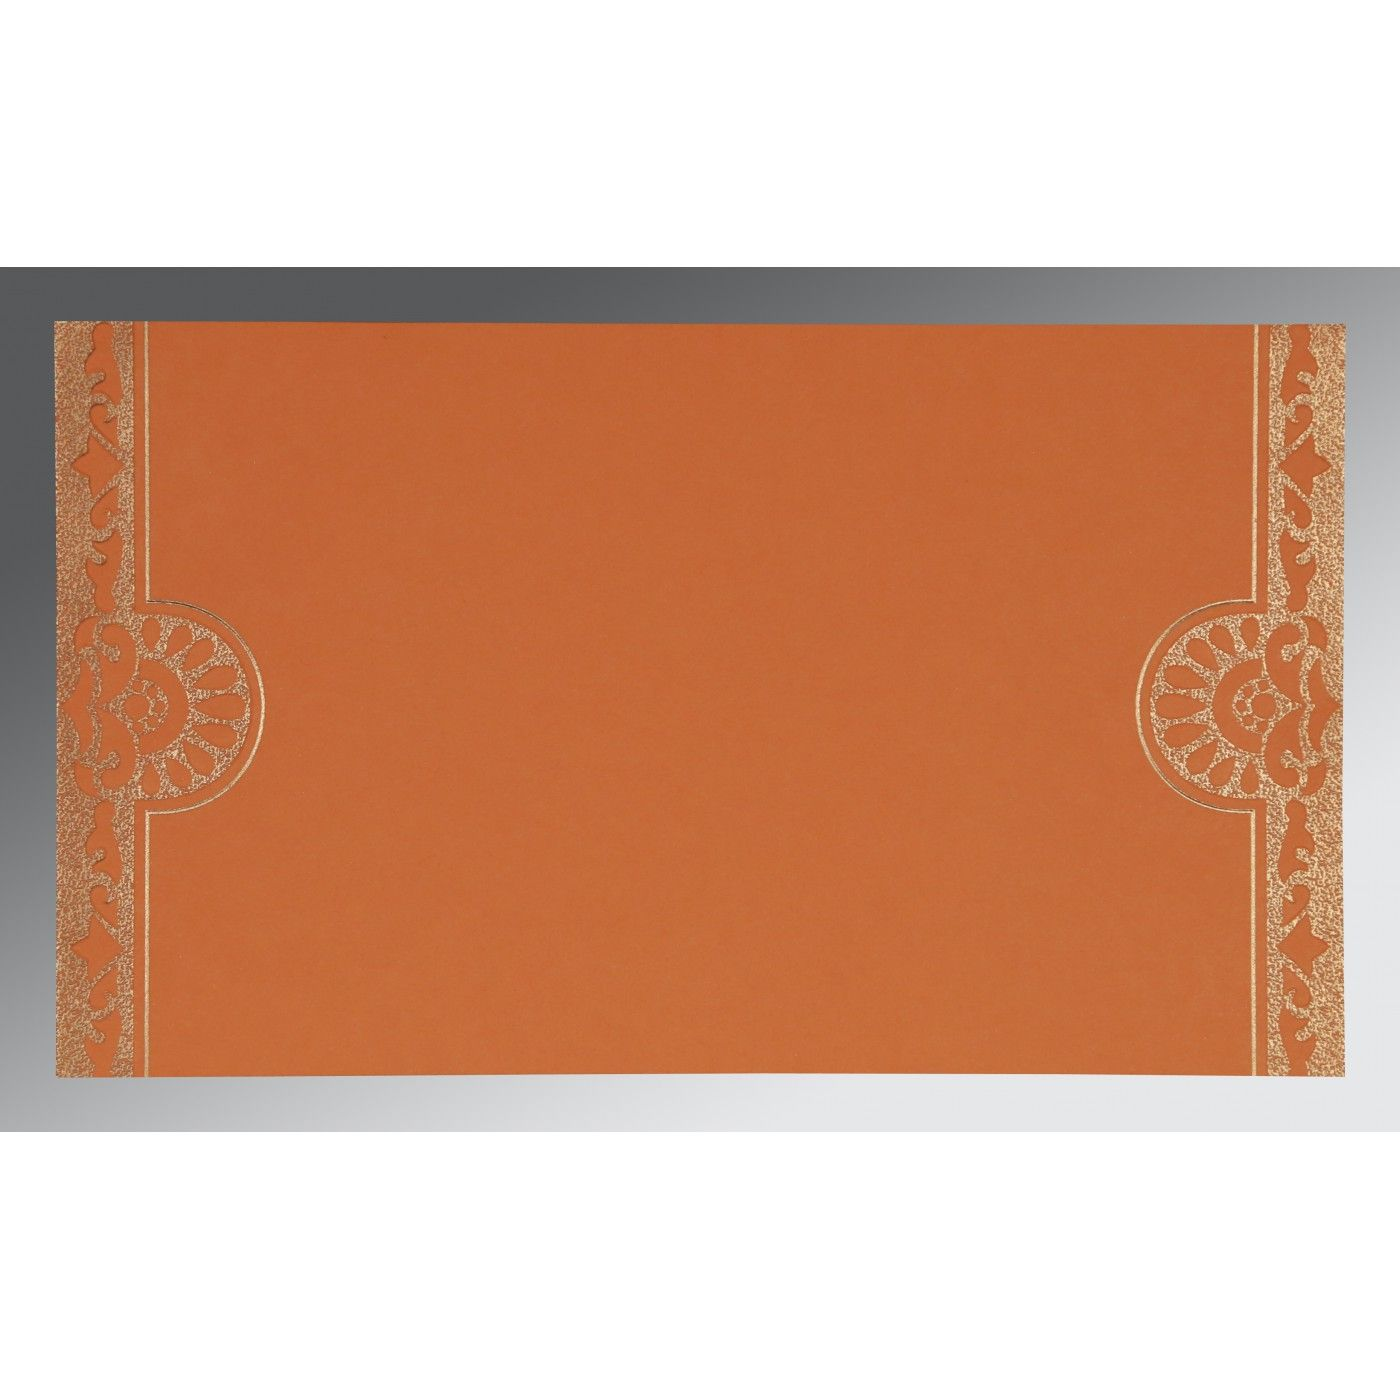 OFF-WHITE SHIMMERY FLORAL THEMED - SCREEN PRINTED WEDDING CARD : CS-8227D - IndianWeddingCards